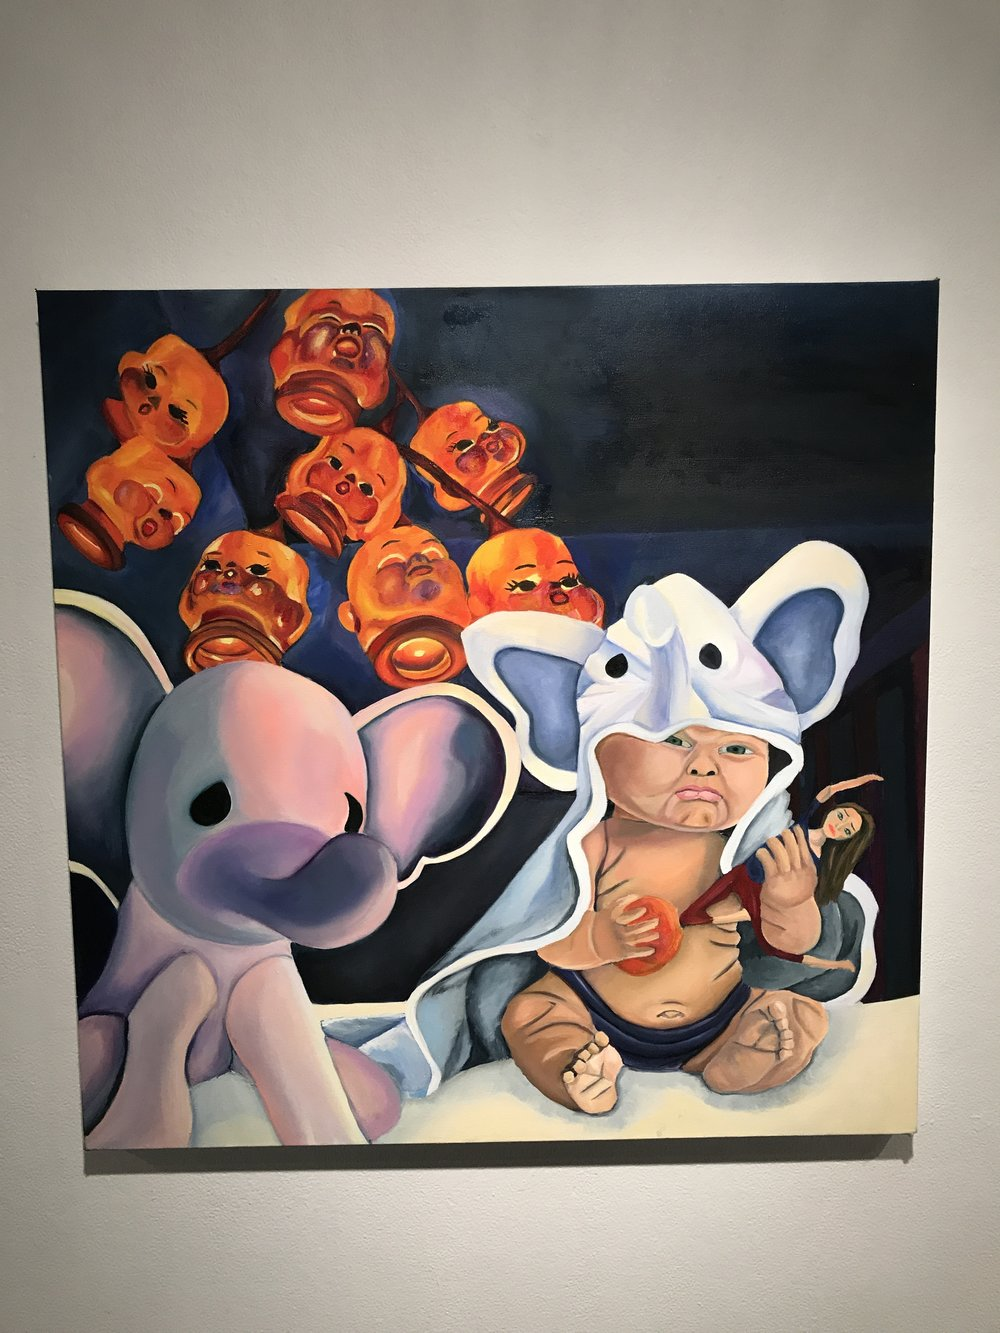 White Elephant, Oil on canvas, Created by Muneerah De La Pena